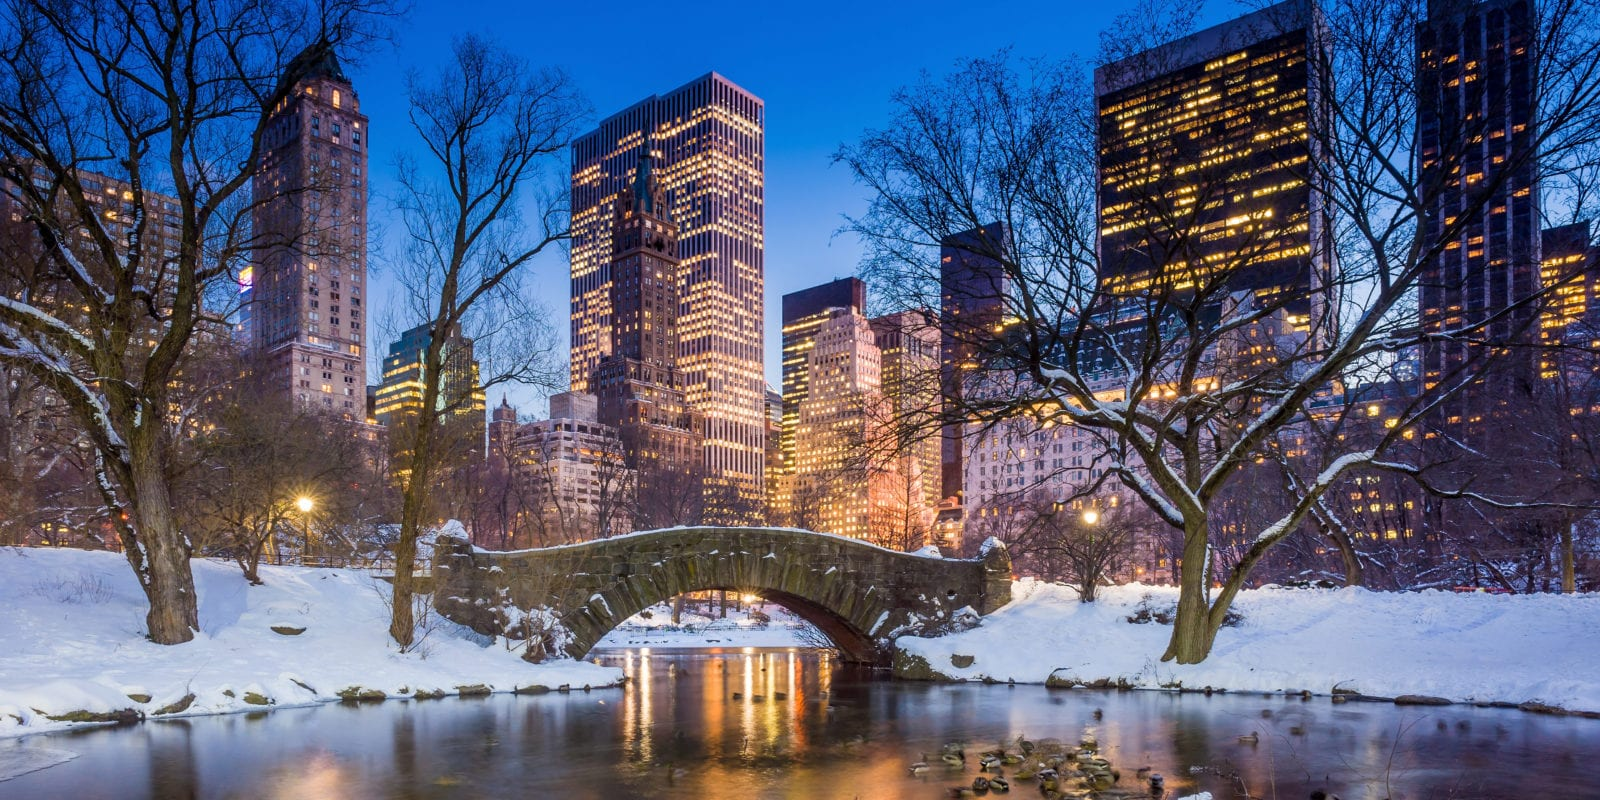 5-Things-to-Do-in-the-NY-Winter-2019